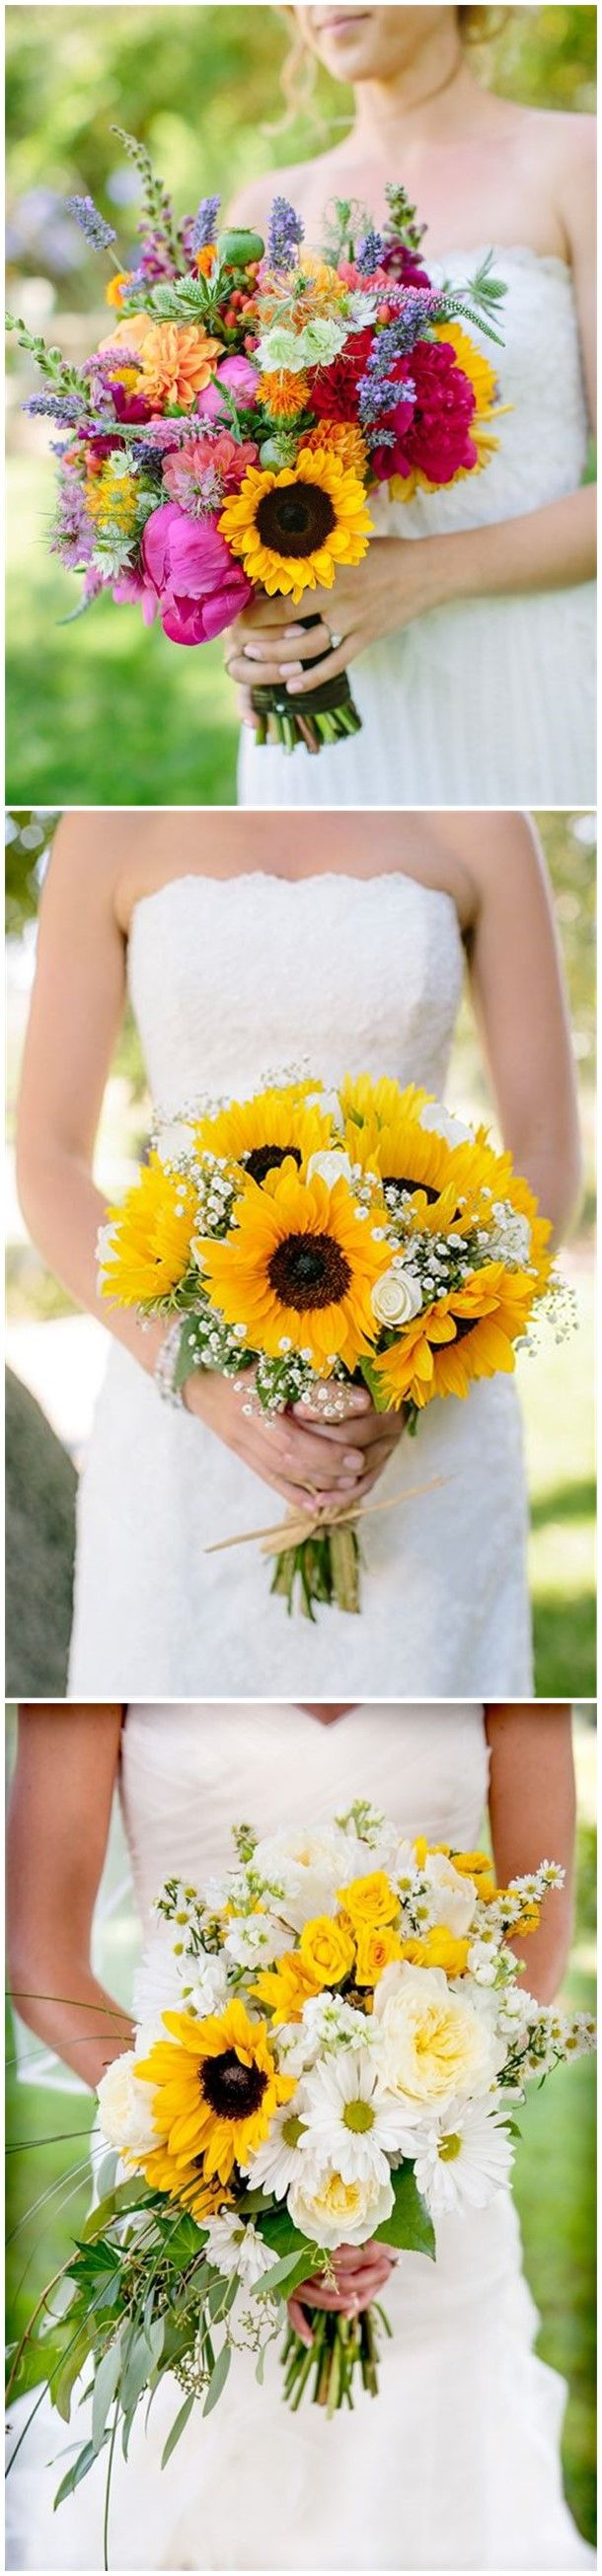 21 perfect sunflower wedding bouquet ideas for summer wedding rustic wedding ideas 21 perfect sunflower wedding bouquet ideas to love see more junglespirit Choice Image